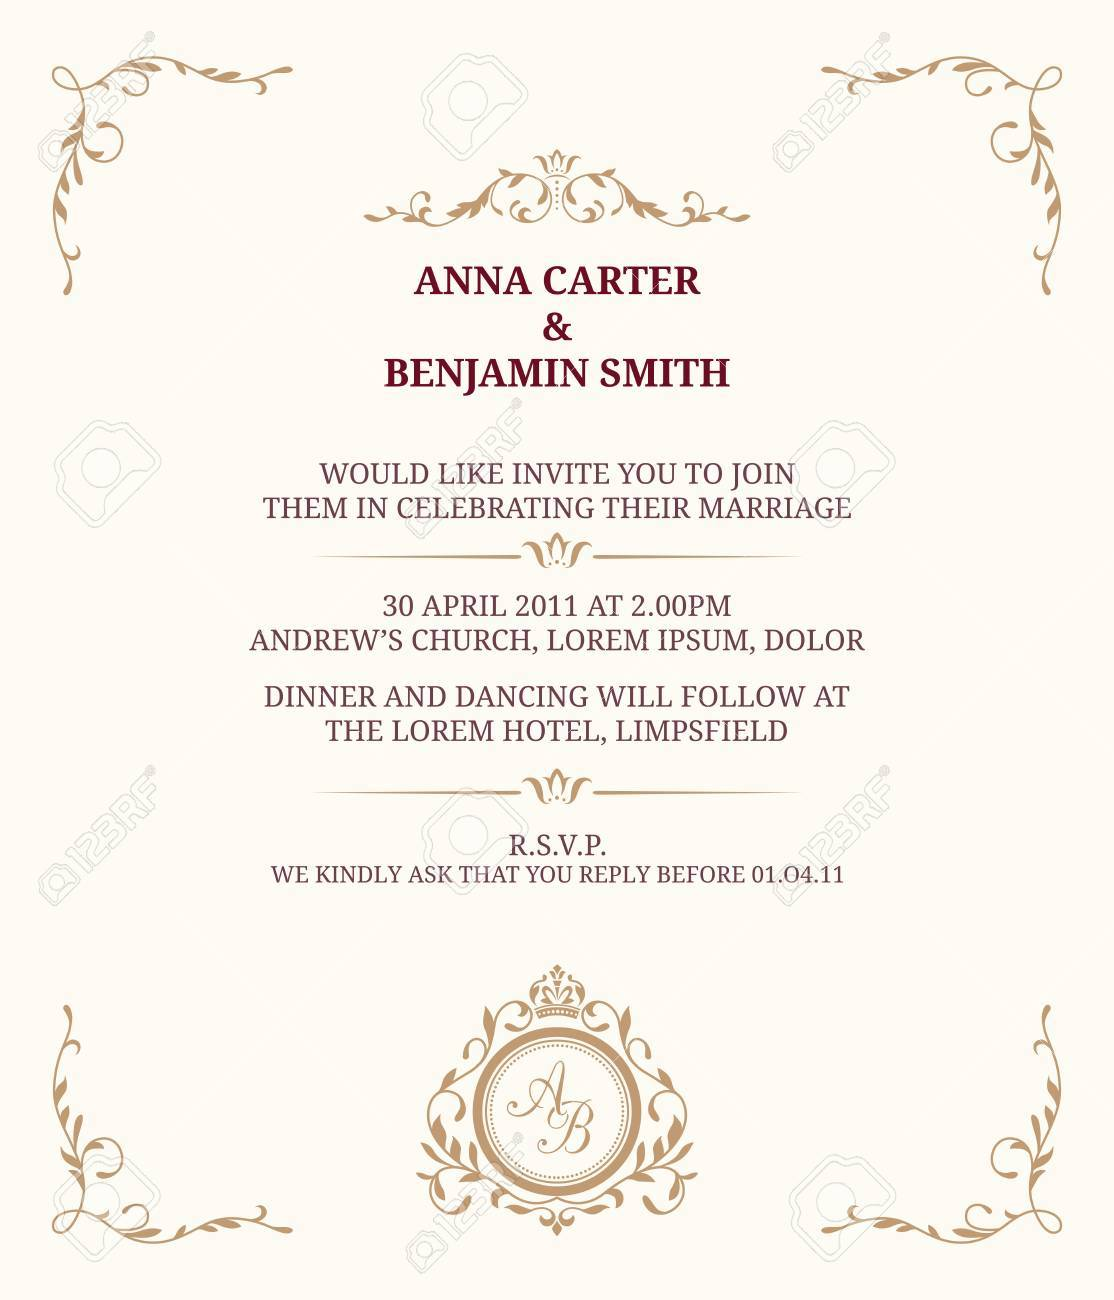 Invitation Card With Monogram Wedding Save The Date